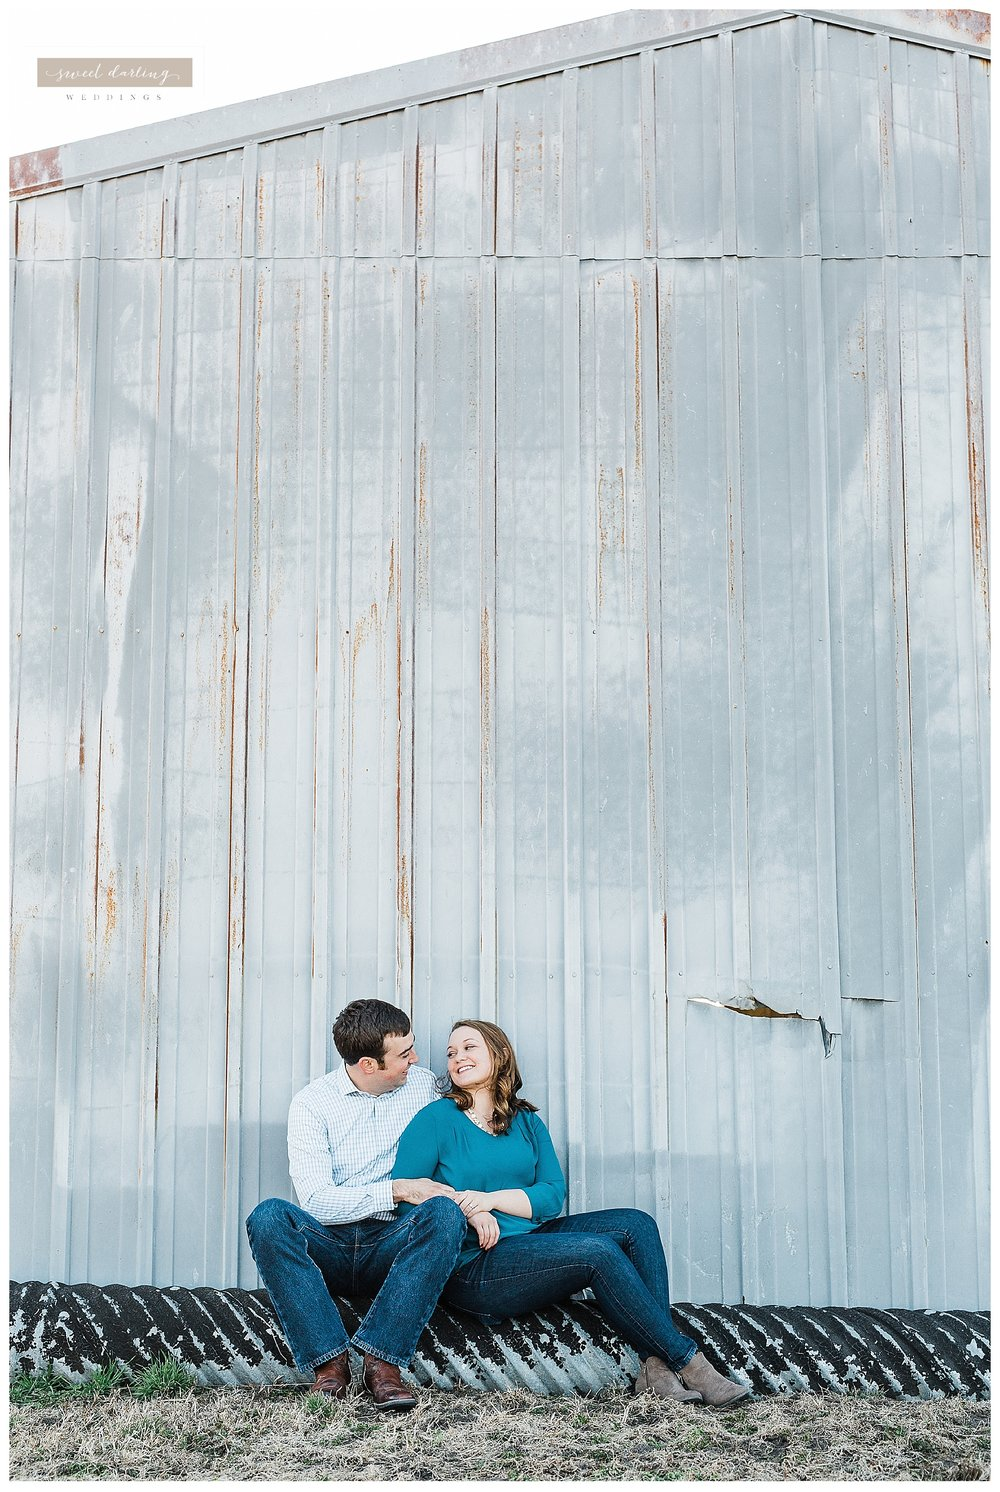 Rantoul-illinois-engagement-session-country-wedding-photographer-sweet-darling-weddings_1256.jpg